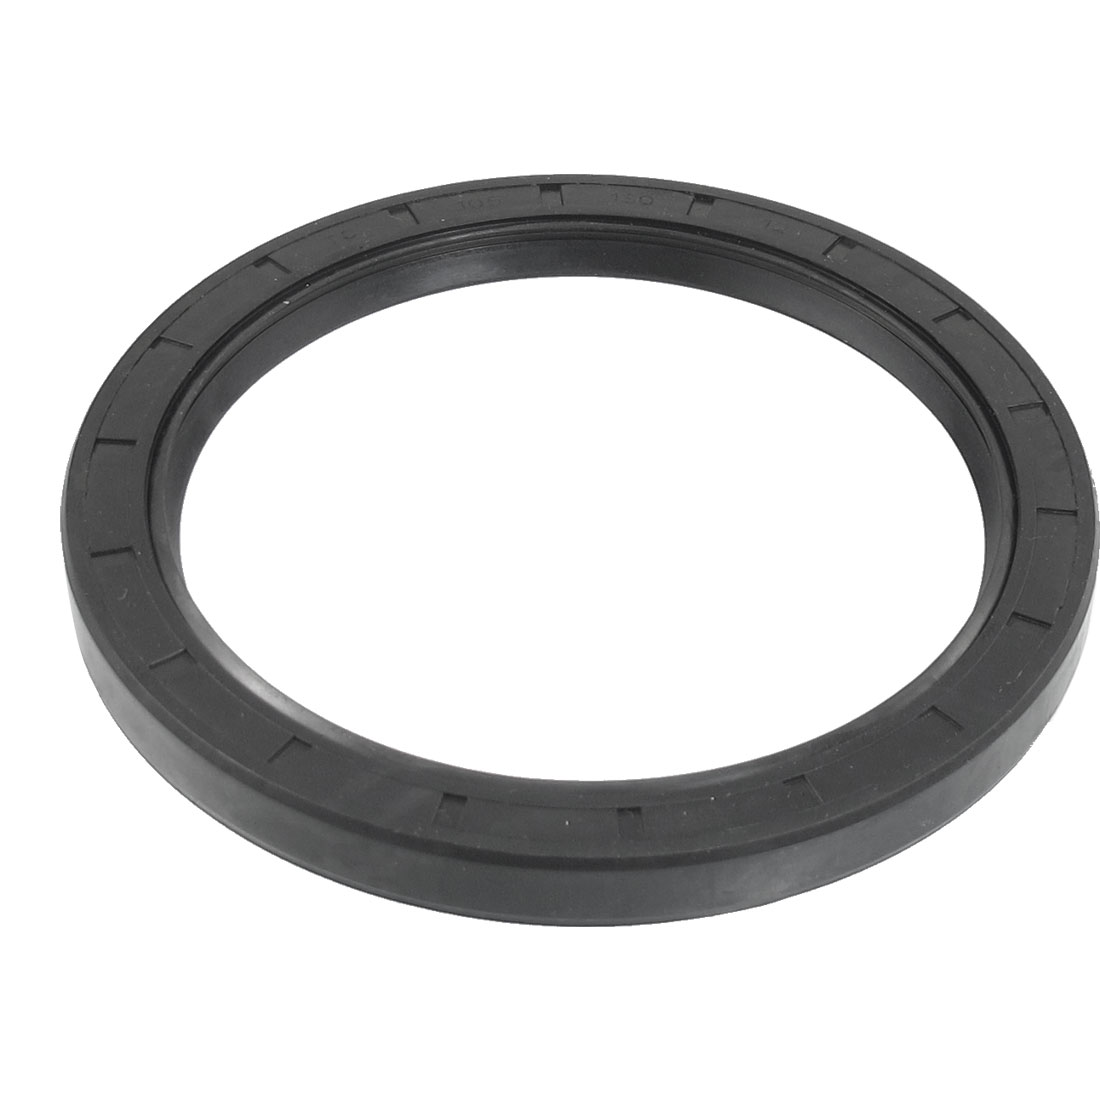 105mm x 130mm x 12mm Metric Double Lipped Rotary Shaft Oil Seal TC